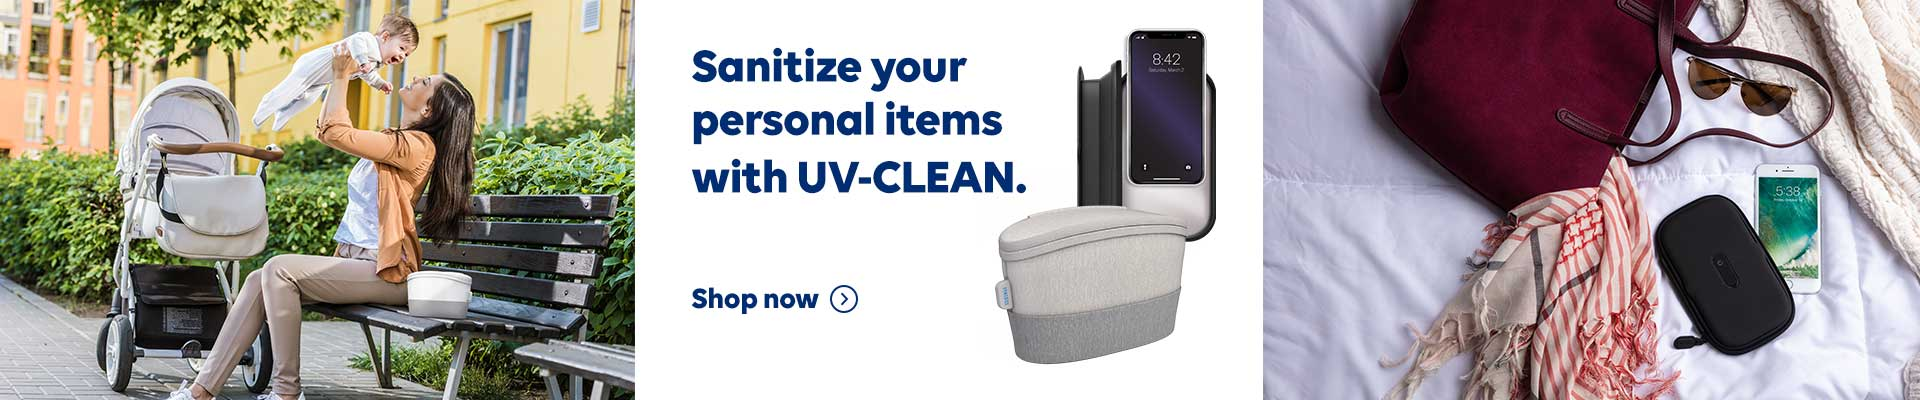 Sanitize your personal items with UV CLEAN. Shop now.